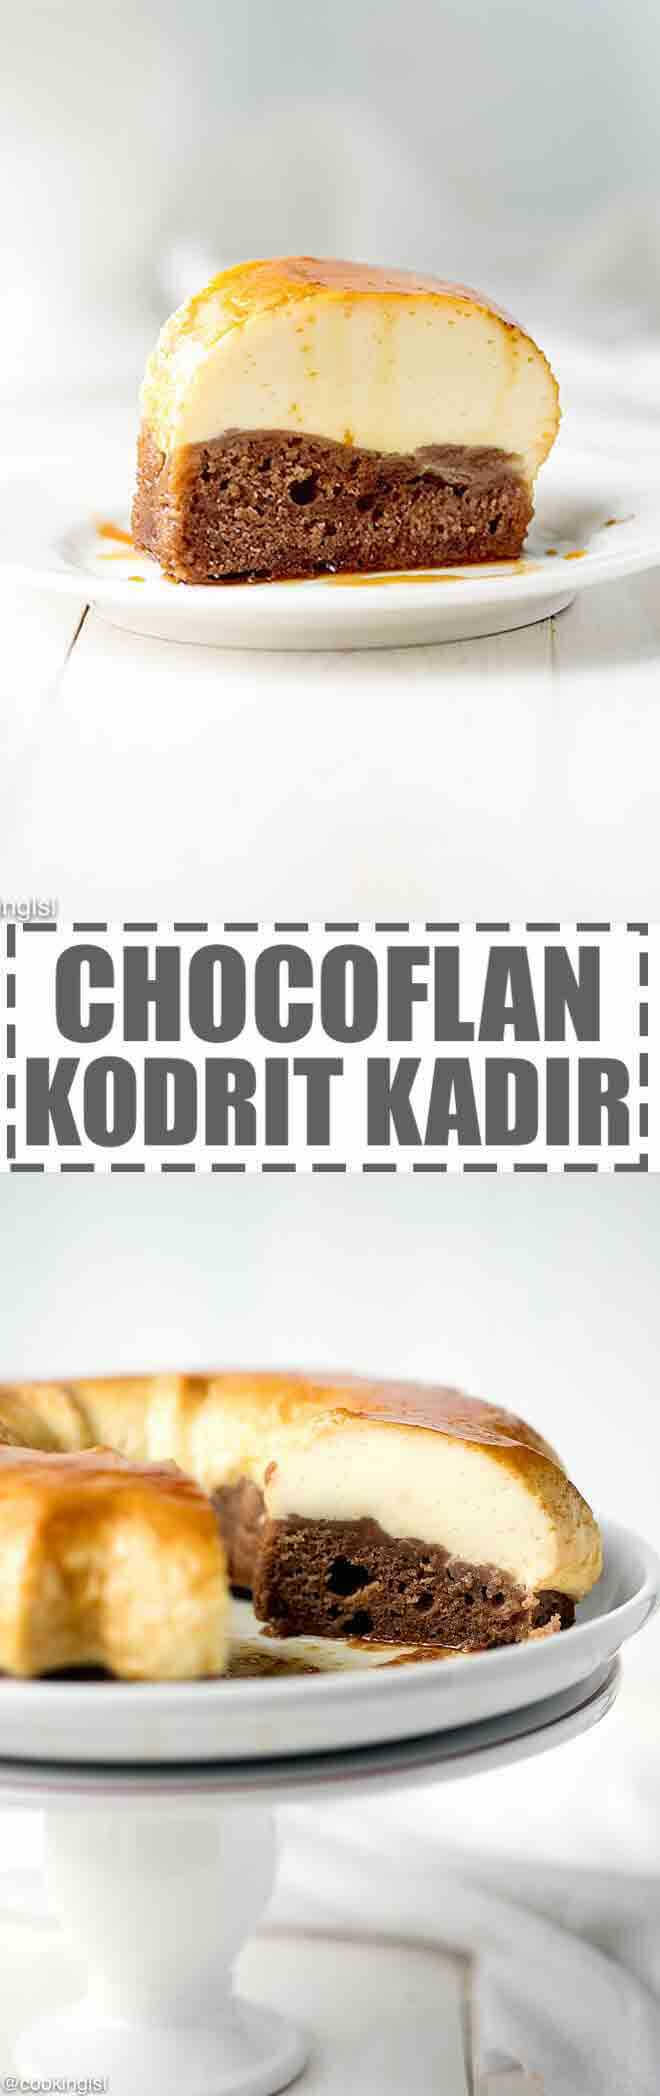 Easy Chocoflan Recipe - Kodrit Kadir -a simple and impressive dessert, that features a layer of chocolate cake on the bottom and smooth and creamy flan layer on top. The chocolate layer soaks up the caramel from the plan, which makes this Chocoflan (Kodrit Kadir) extra moist.